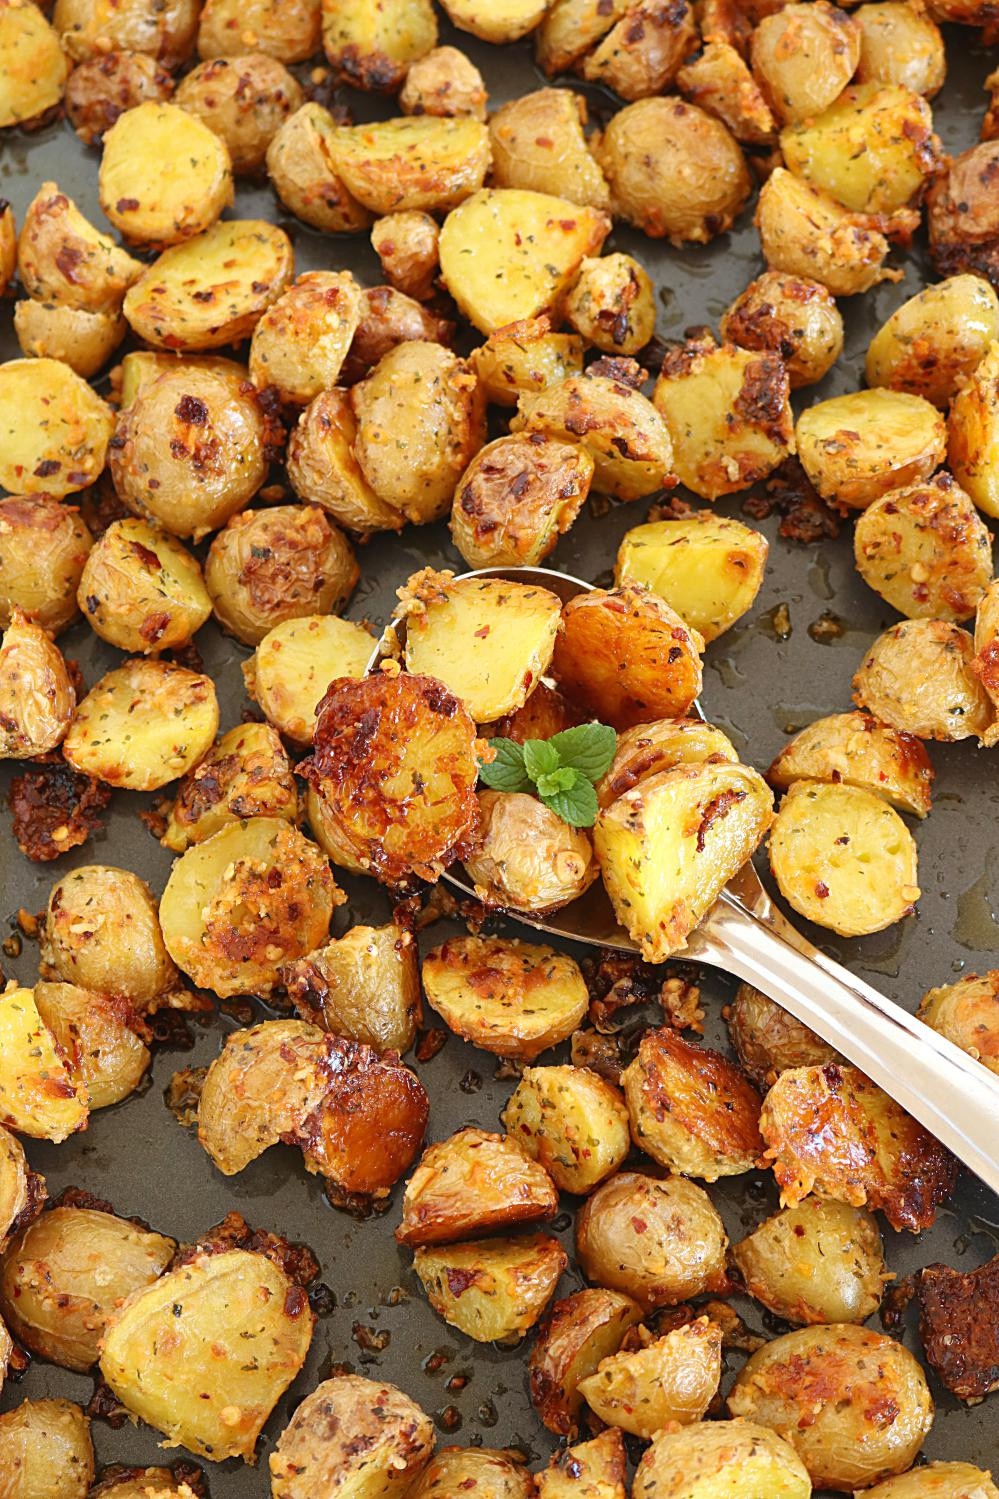 Roasted Potatoes In The Oven  Oven Roasted Potatoes Crispy Oven Roasted Potatoes how